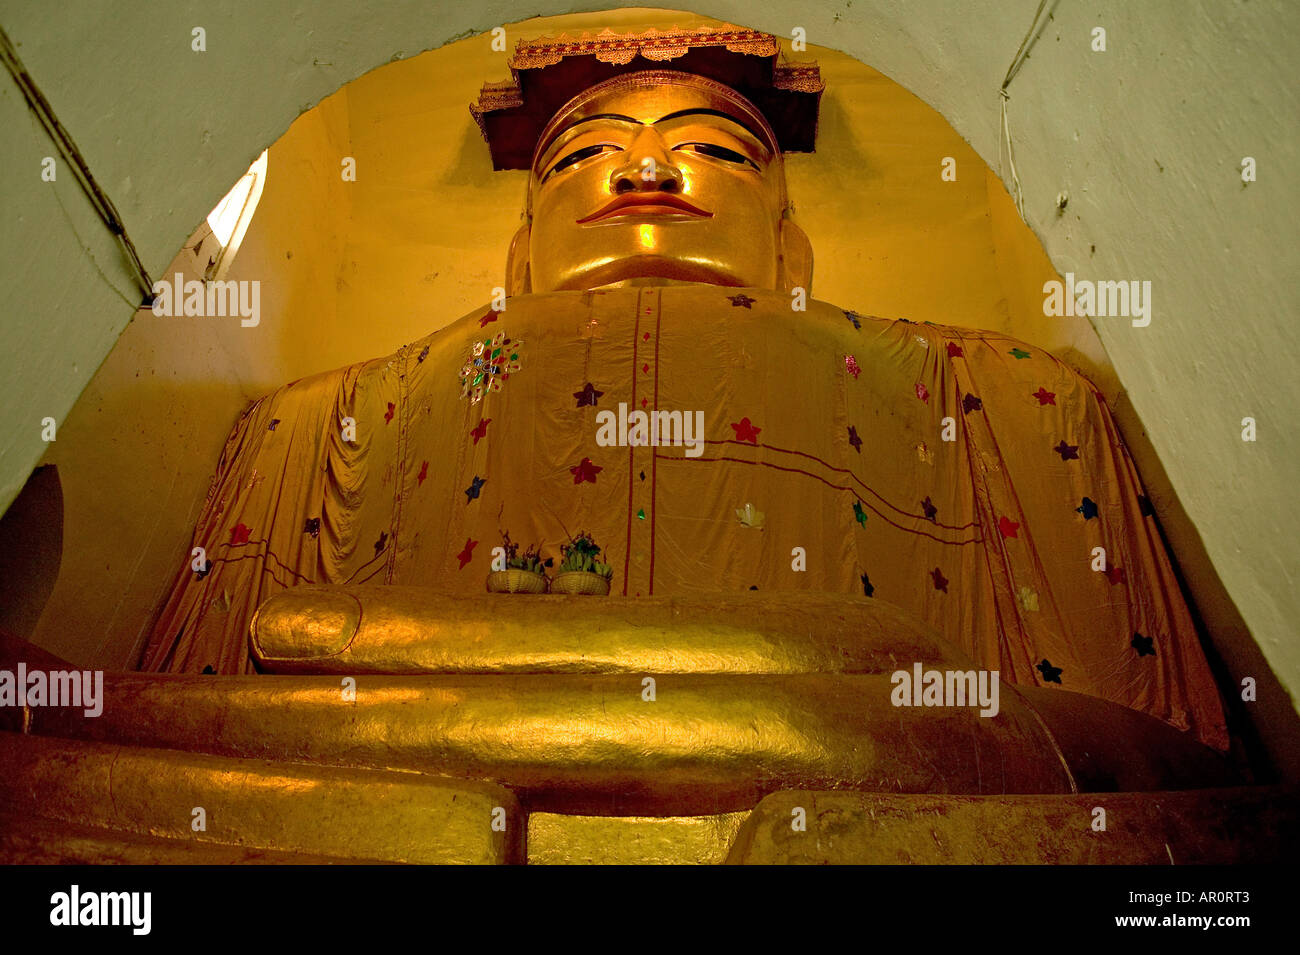 Buddha statue in cramped building, Manuha Paya builta decade afterthe Mon King of Thaton's imprisonment - Stock Image